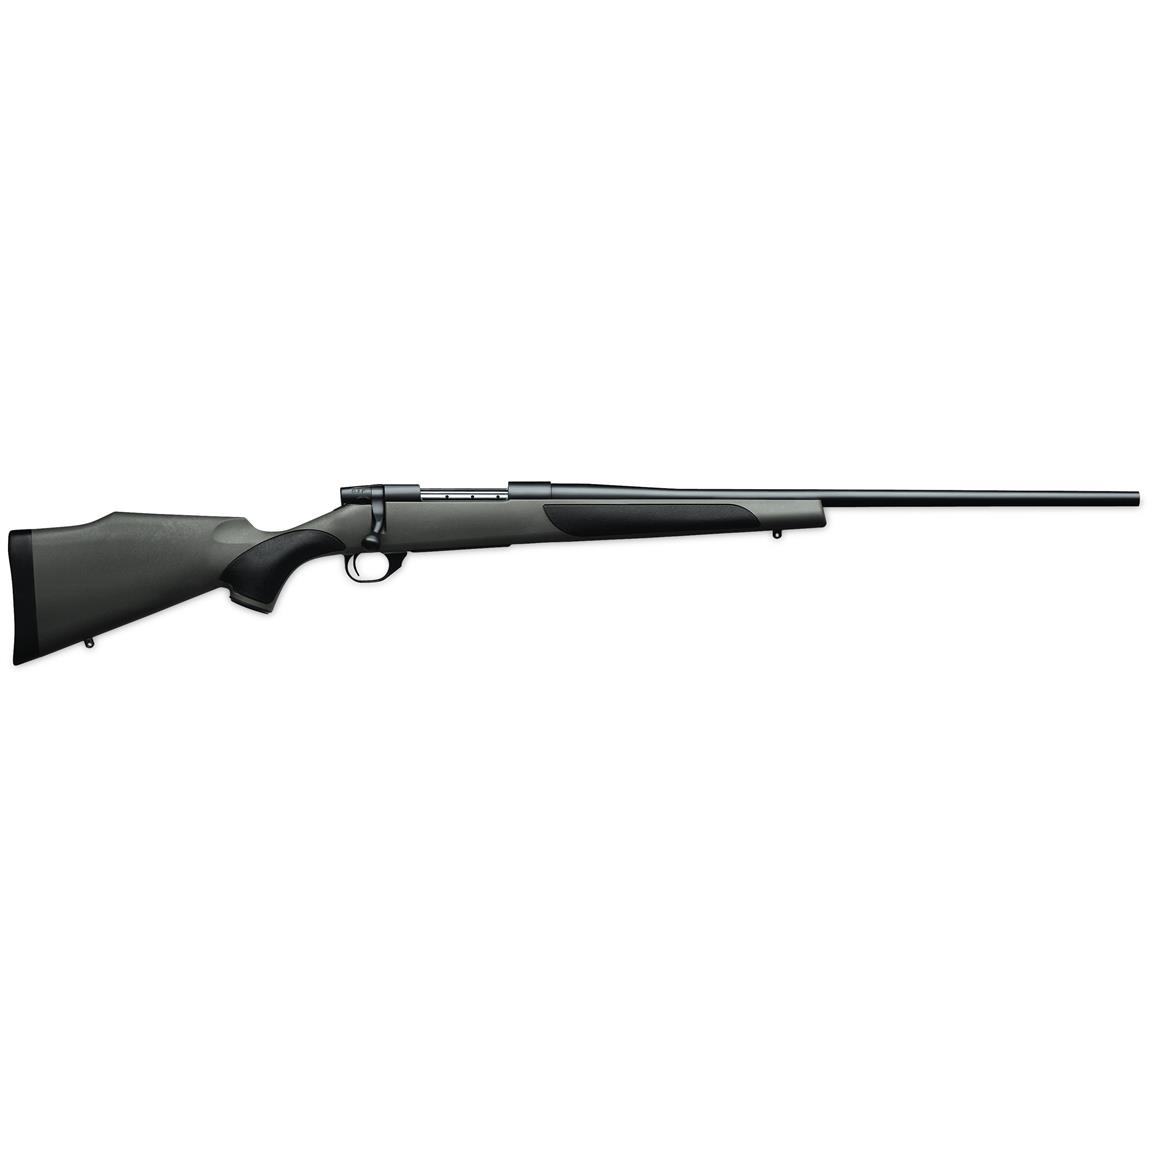 "Weatherby Vanguard 2 Synthetic, Bolt Action, .22-250 Remington, 24"" Barrel, 5+1 Rounds"